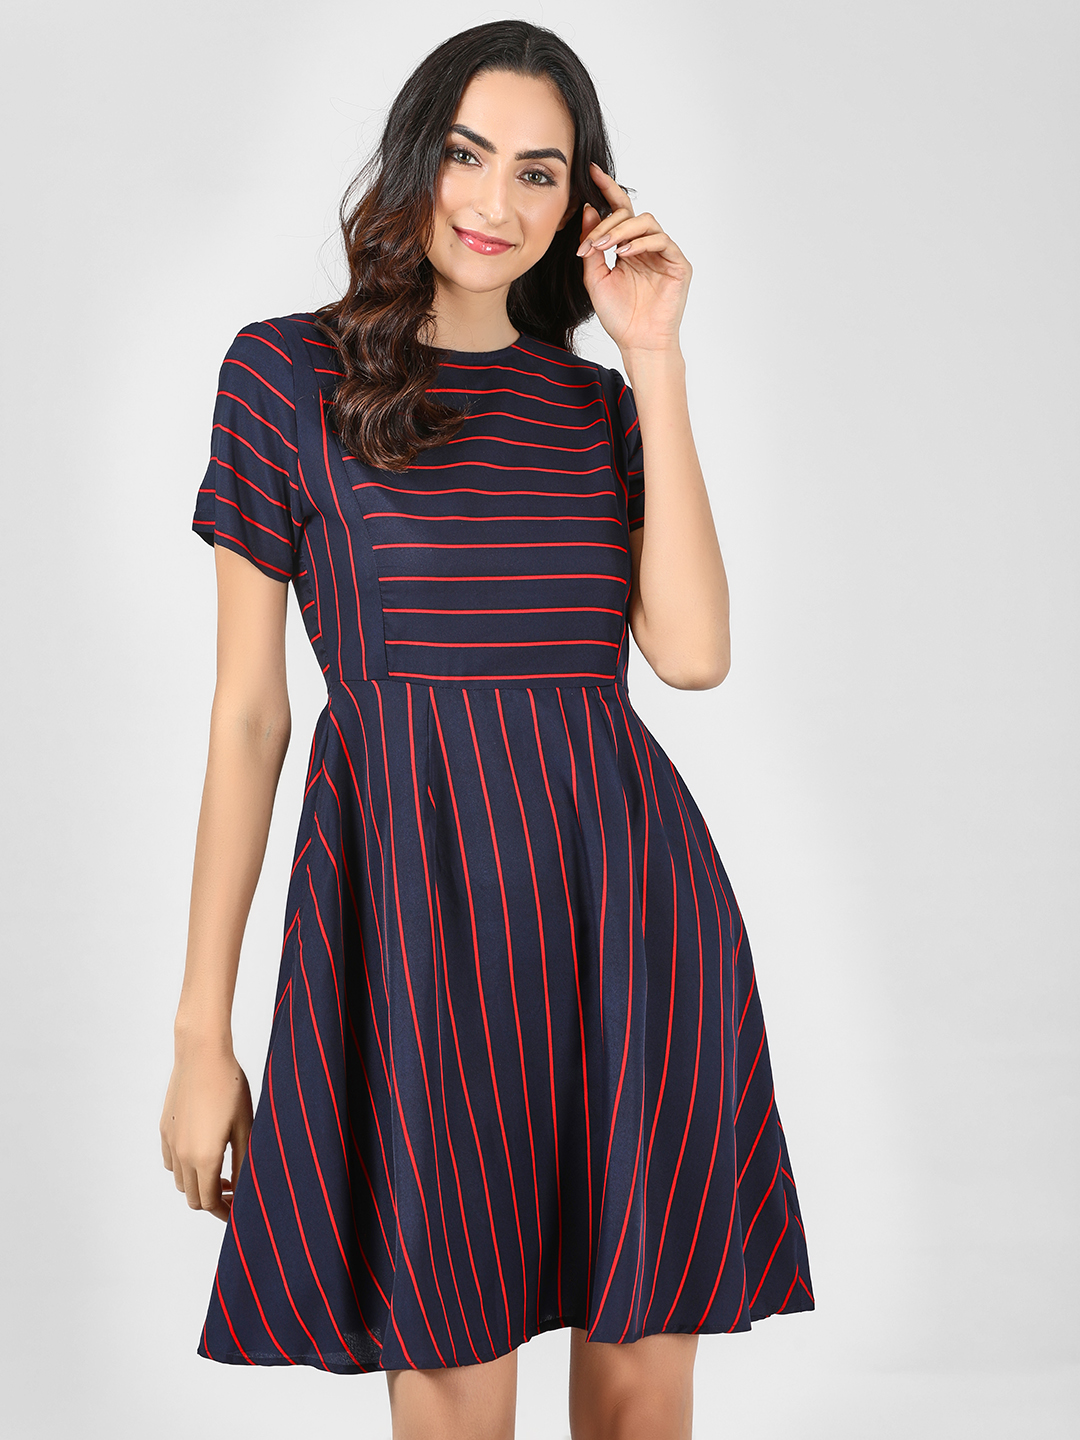 Sbuys Multi Mixed Stripe Skater Dress 1